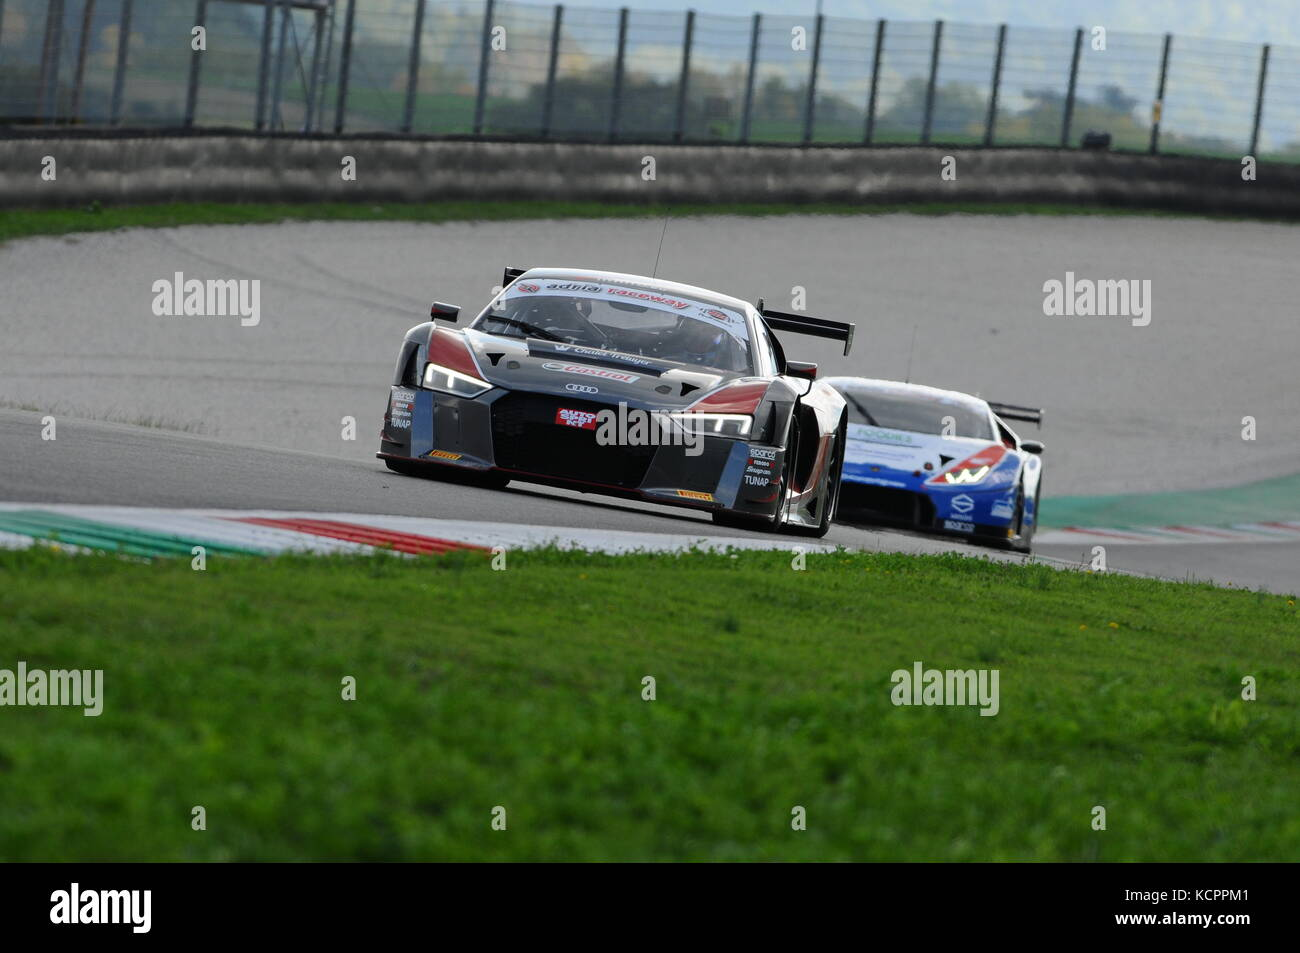 Mugello Circuit, Italy. 6th Oct, 2017. AUDI R8 LMS AUDI SPORT Italia Team driven by GHIRELLI Vittorio - TRELUYER Stock Photo